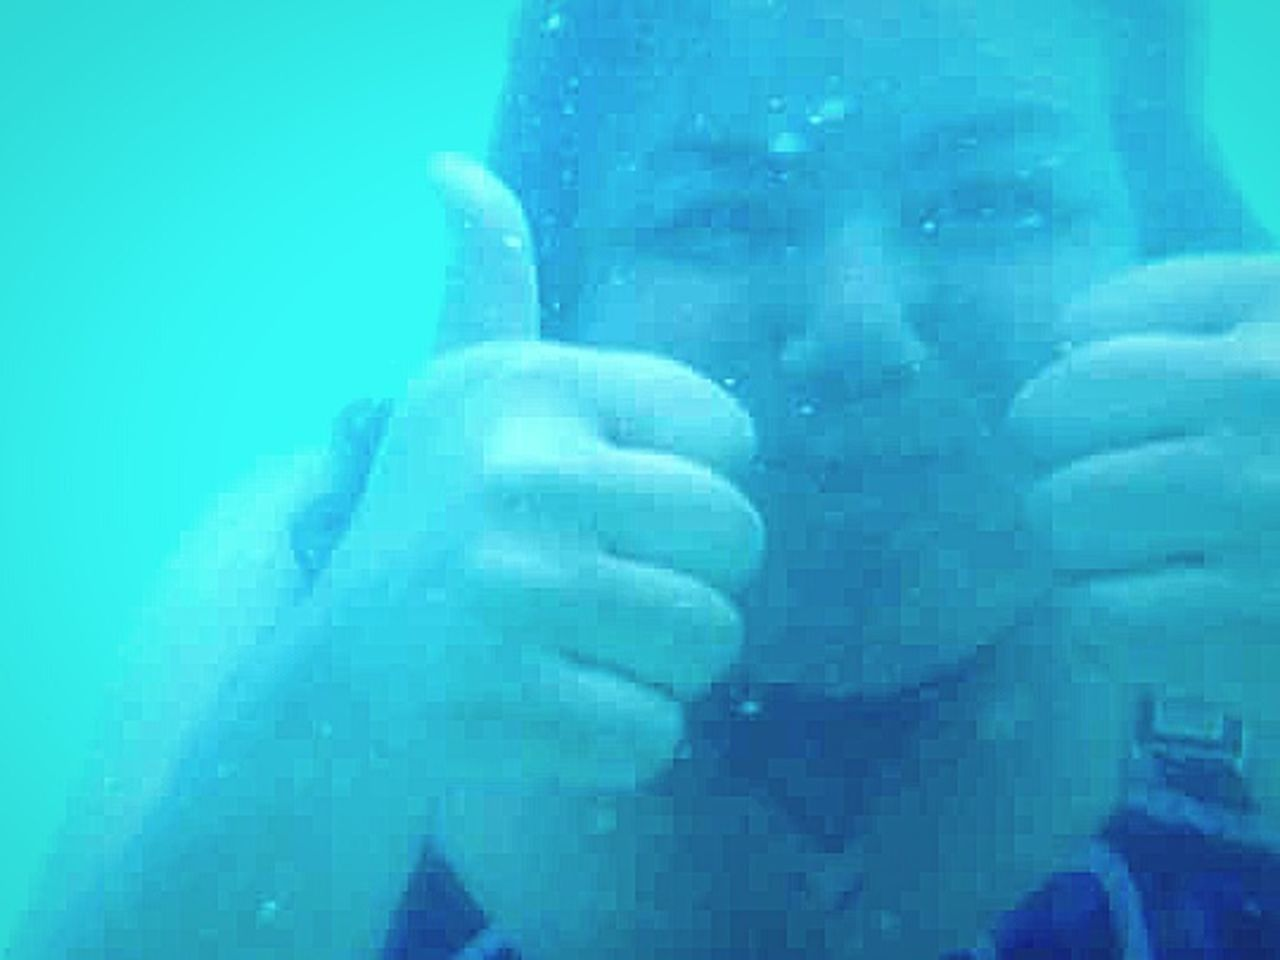 The Essence Of Summer The Following Swimming Underwater Swimming In The Lake Having Fun With Kids Vacation Time ♡ Clear Blue Water Water Photography Taking Photos ❤ Lake Tahoe Waterproof Camera My Happy Place  Thats Me ♥ Swimming :) Enjoying Life Water Underwater Photography Thumbs Up Bubbles In Water Bubbles...bubbles...bubbles...bubbles ♡